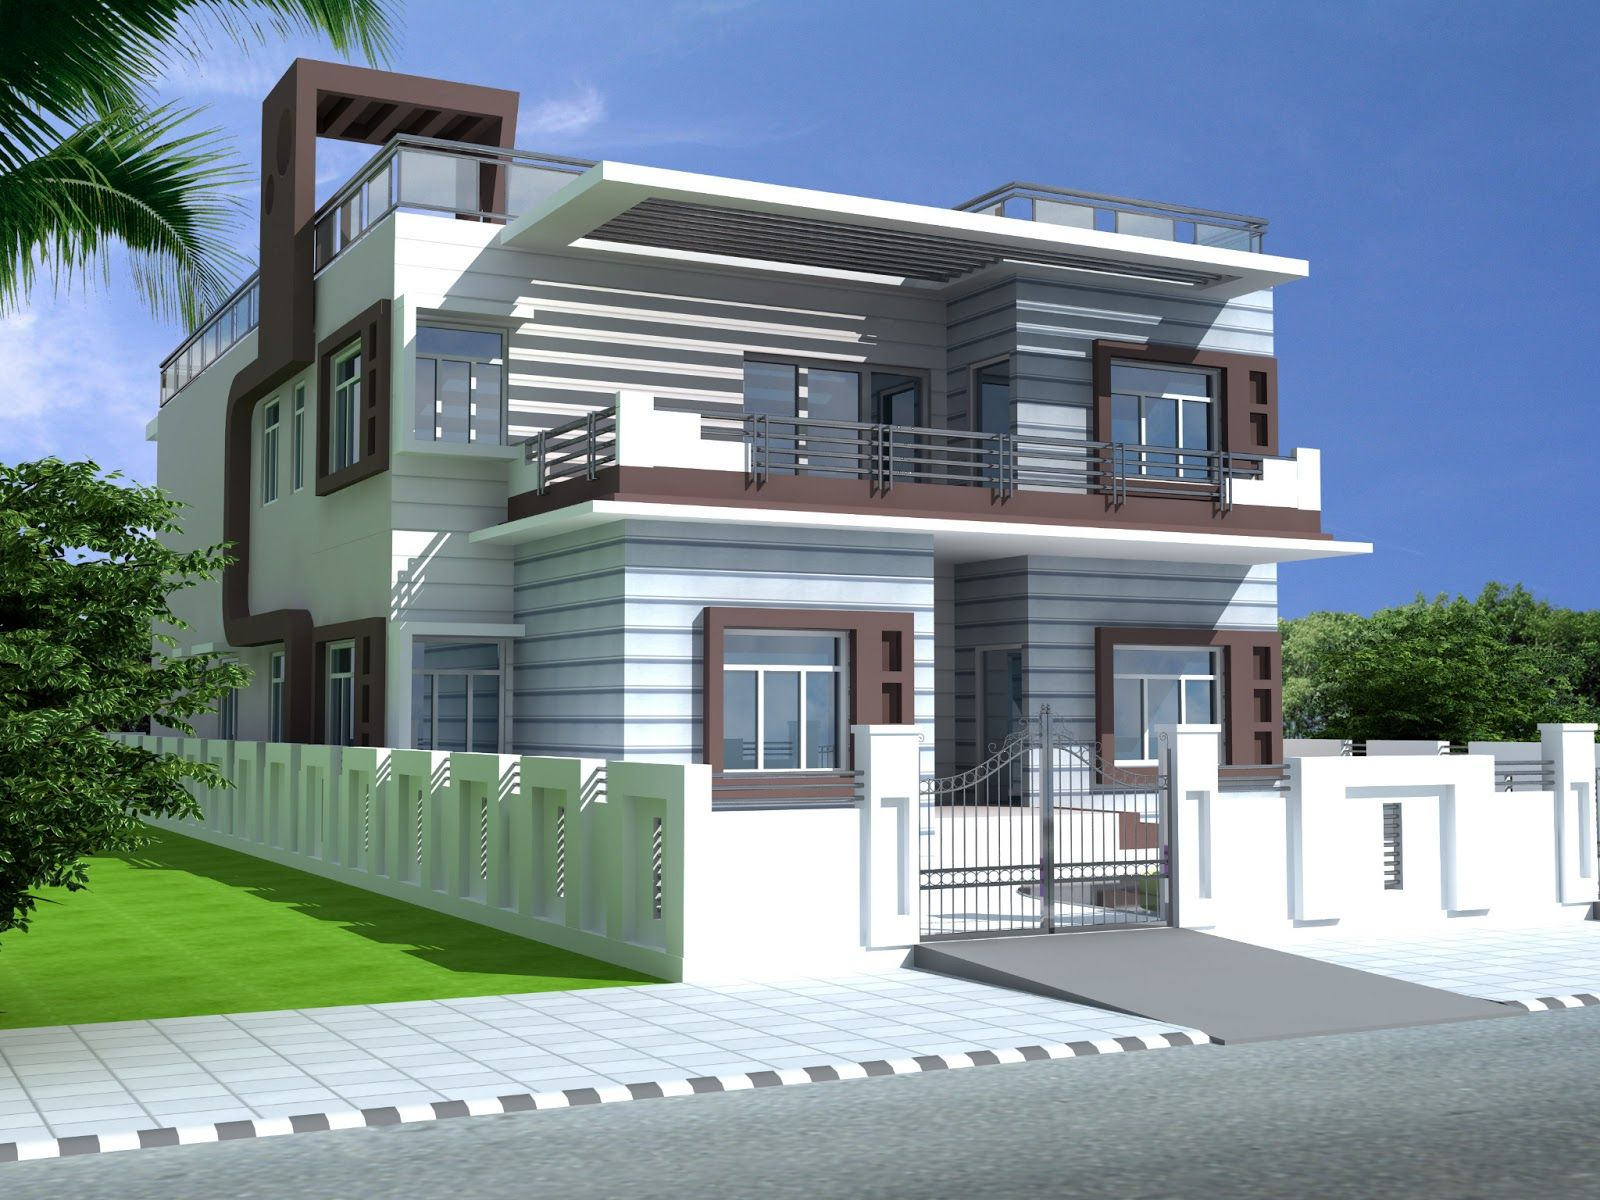 6 bedrooms duplex house design in 390m2 13m x 30m for House structure design